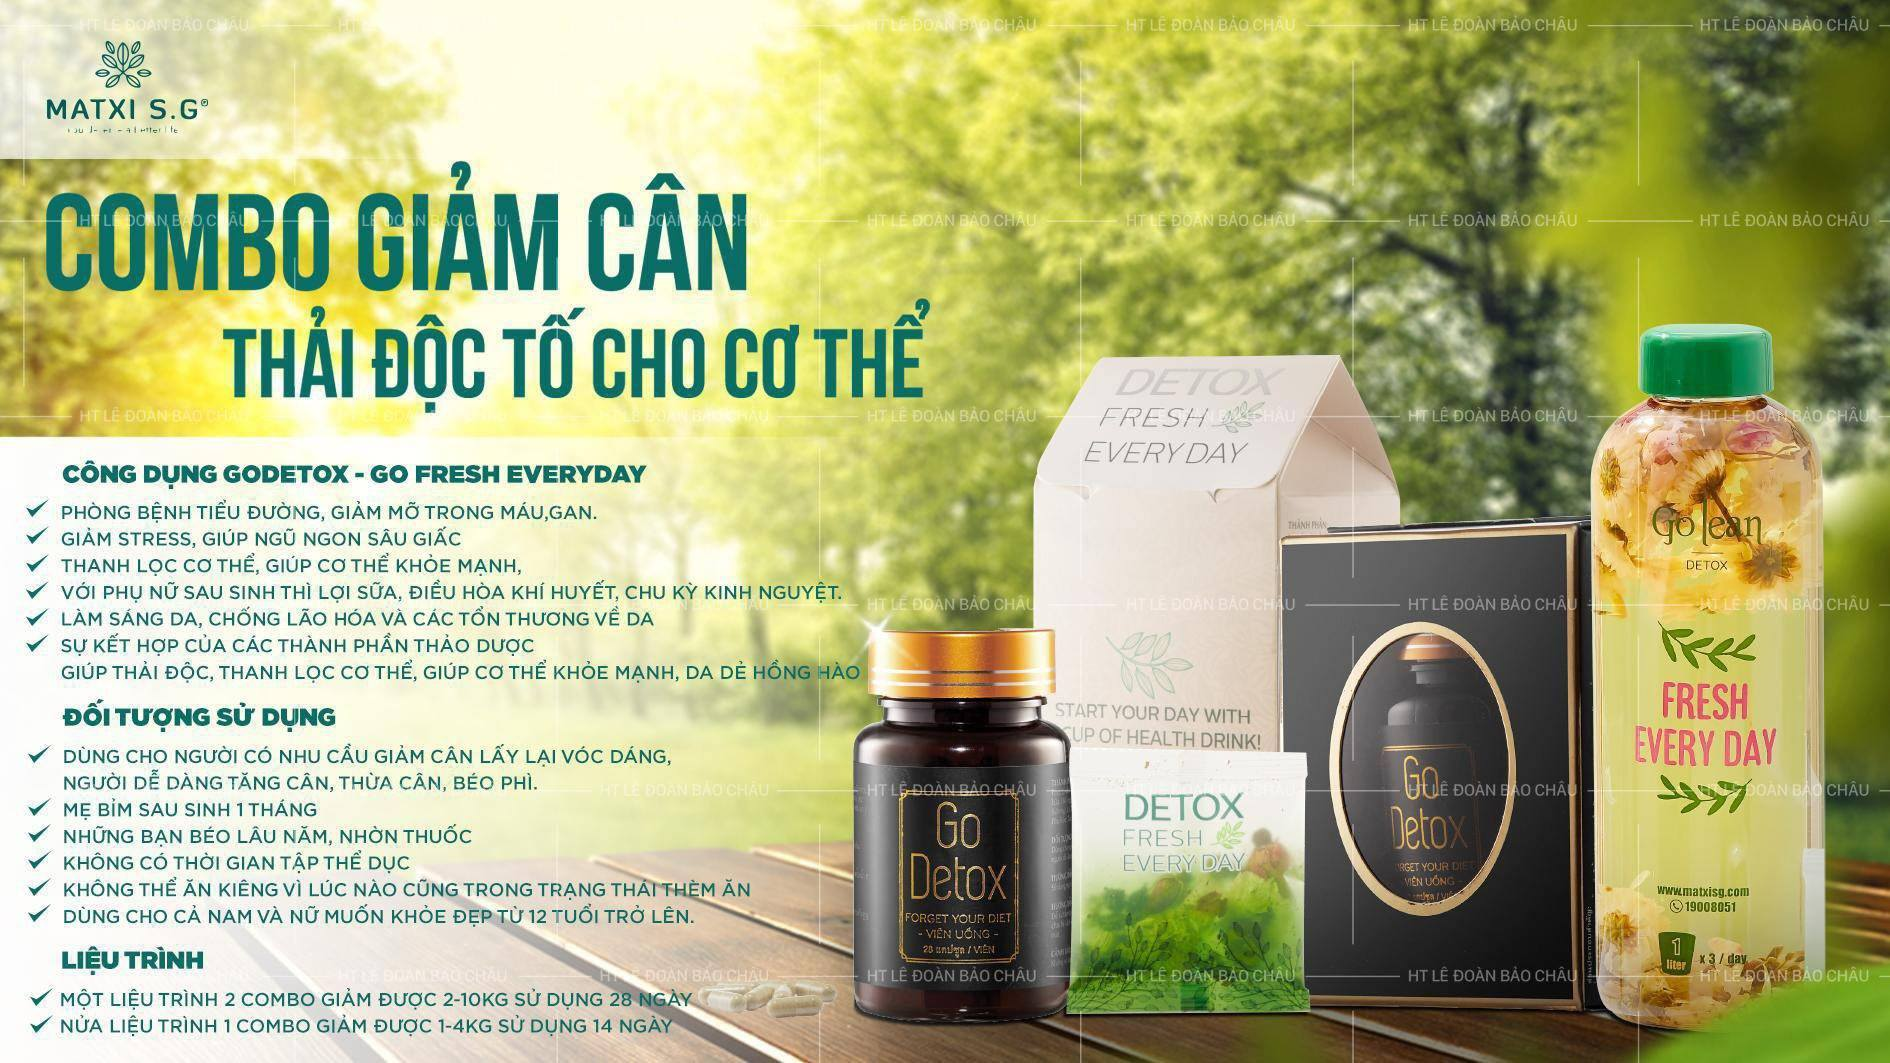 vien uong giam can go detox va tra nu hoa thai doc detox fresh every day